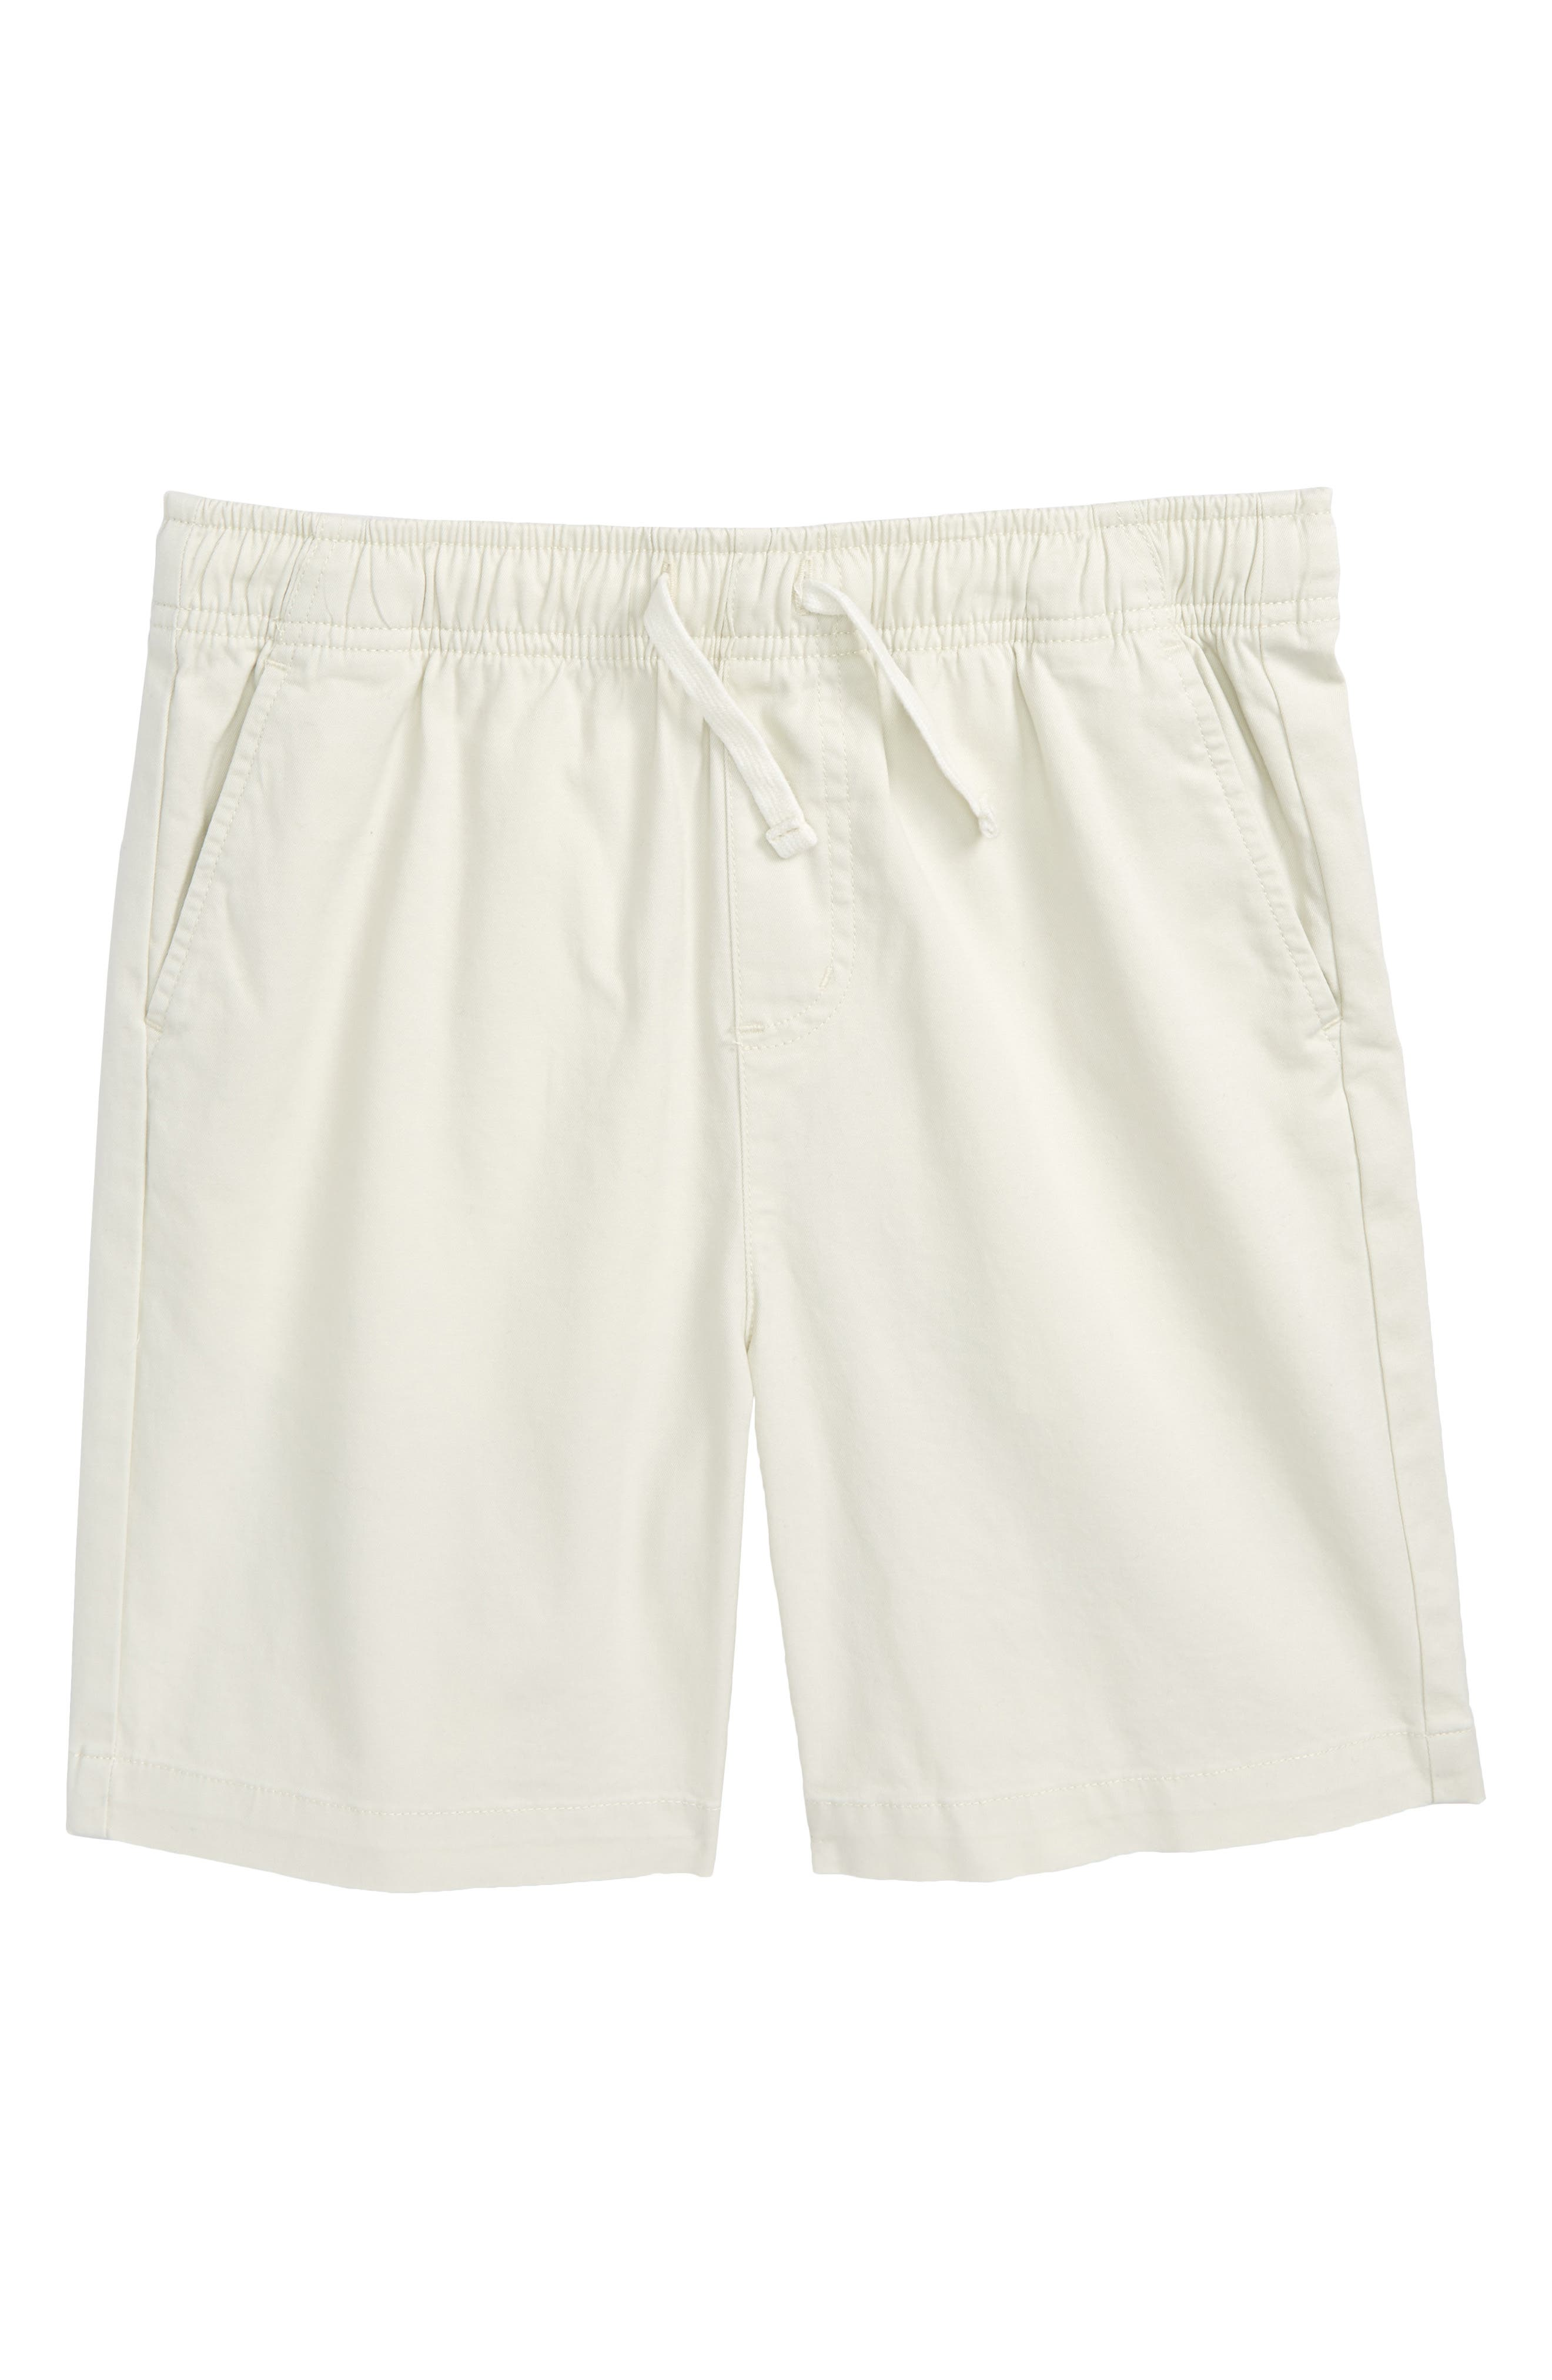 Stretch Jetty Shorts,                         Main,                         color, 274